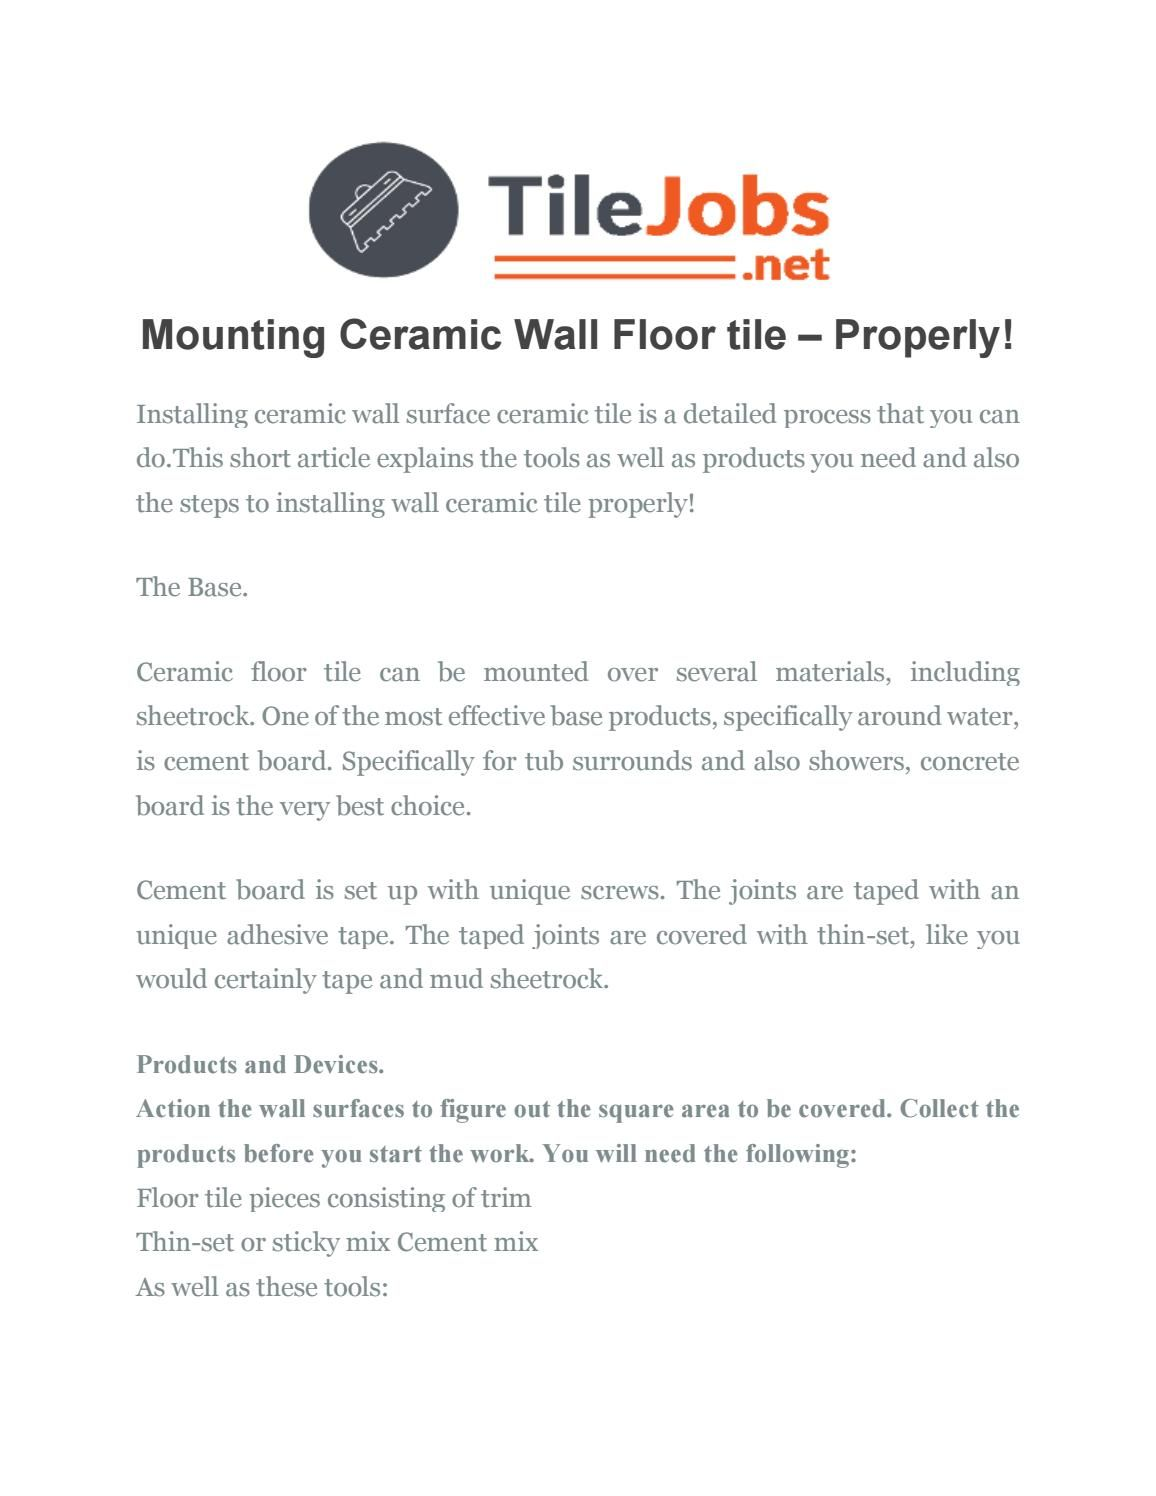 Mounting Ceramic Wall Floor Tile Properly Tile Installation